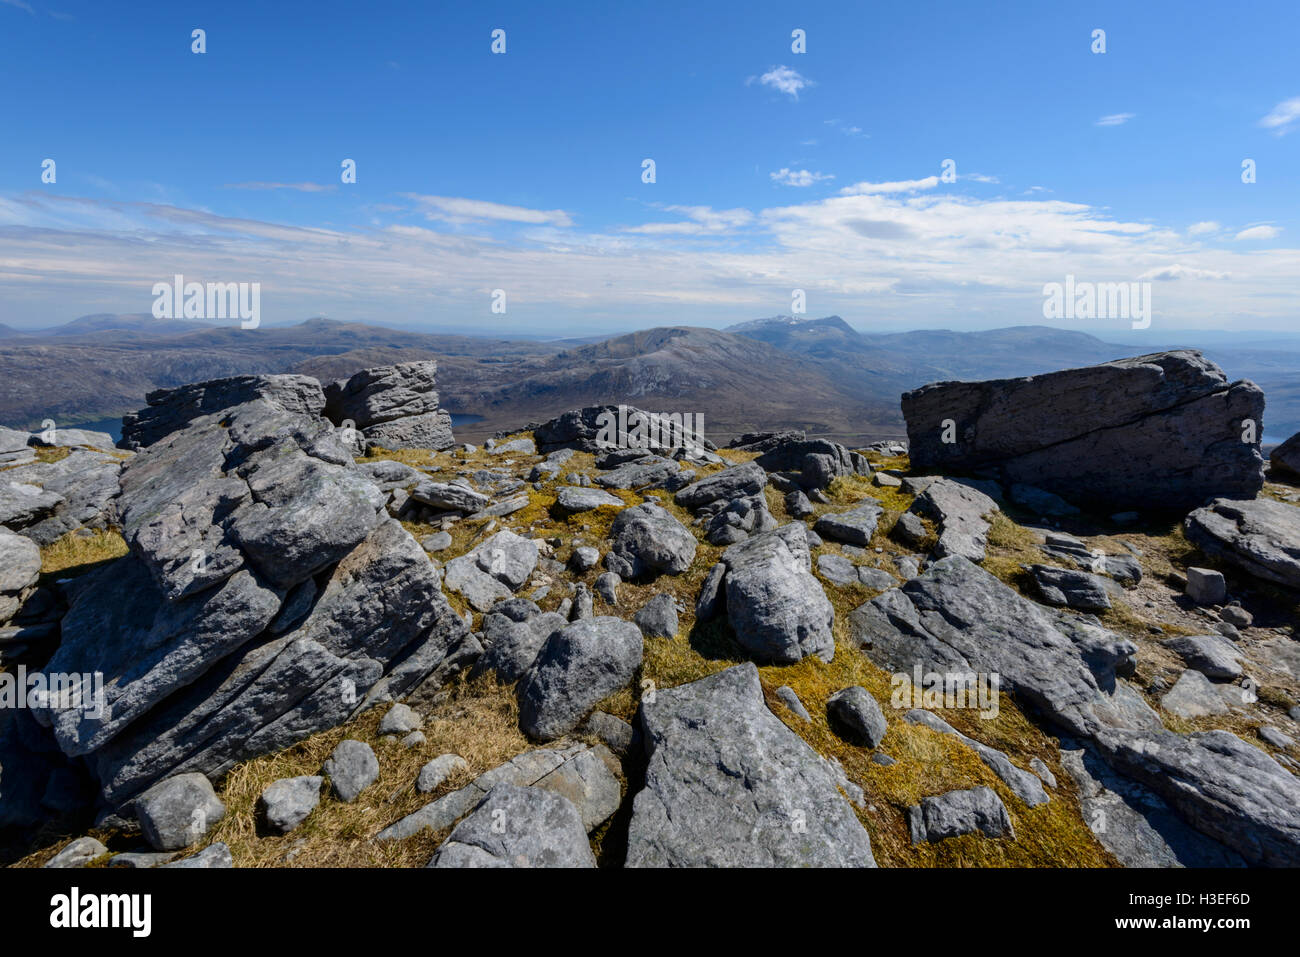 Glas Bheinn (Corbett) and the Munros of Conival and Ben More Assynt behind from Sail Gharbh (Corbett), Quinag, Assynt - Stock Image